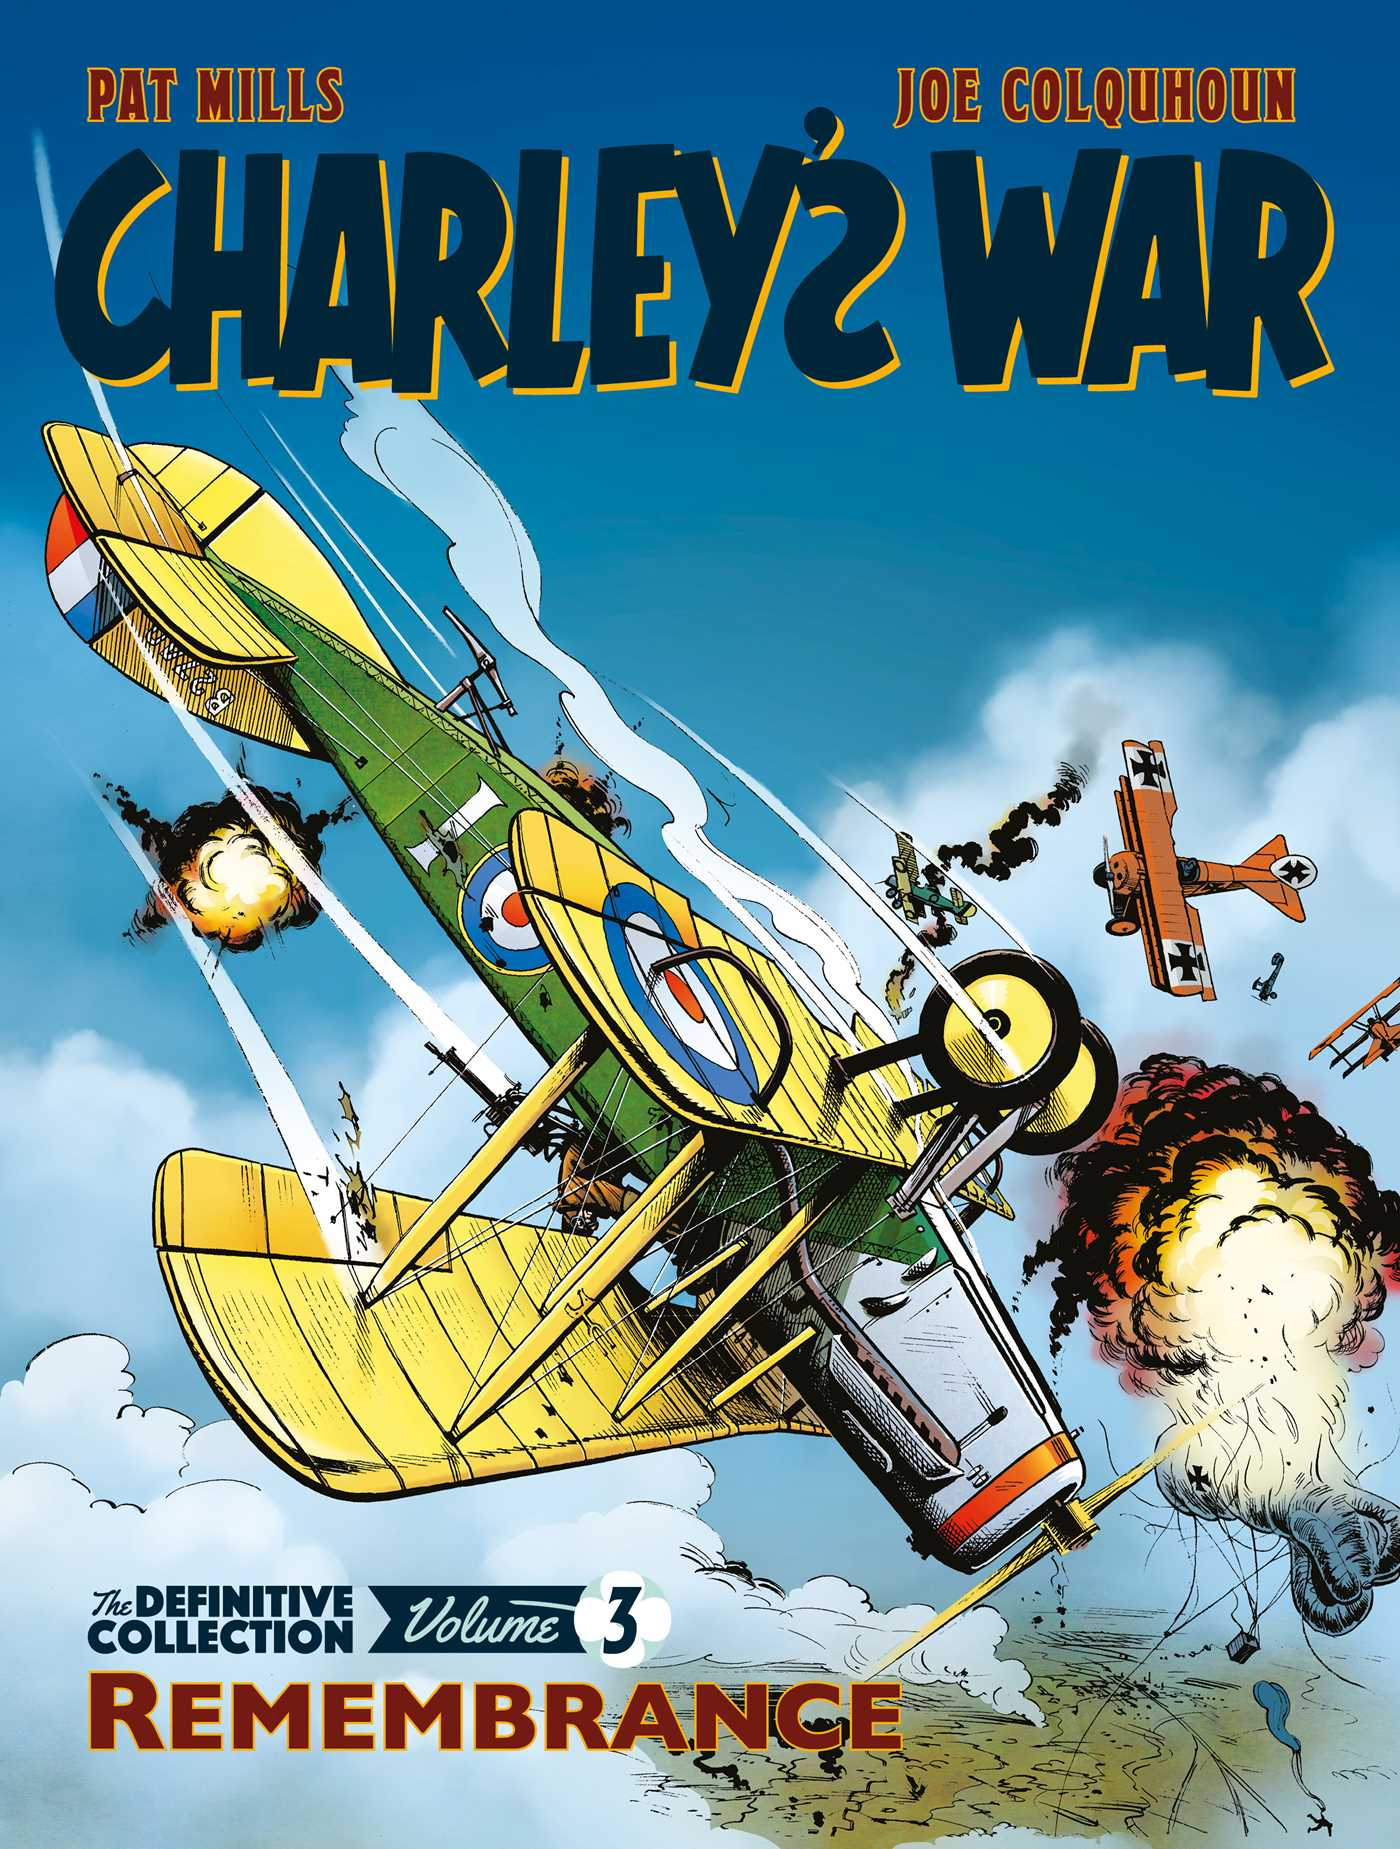 charley-s-war-vol-3-remembrance-the-defi